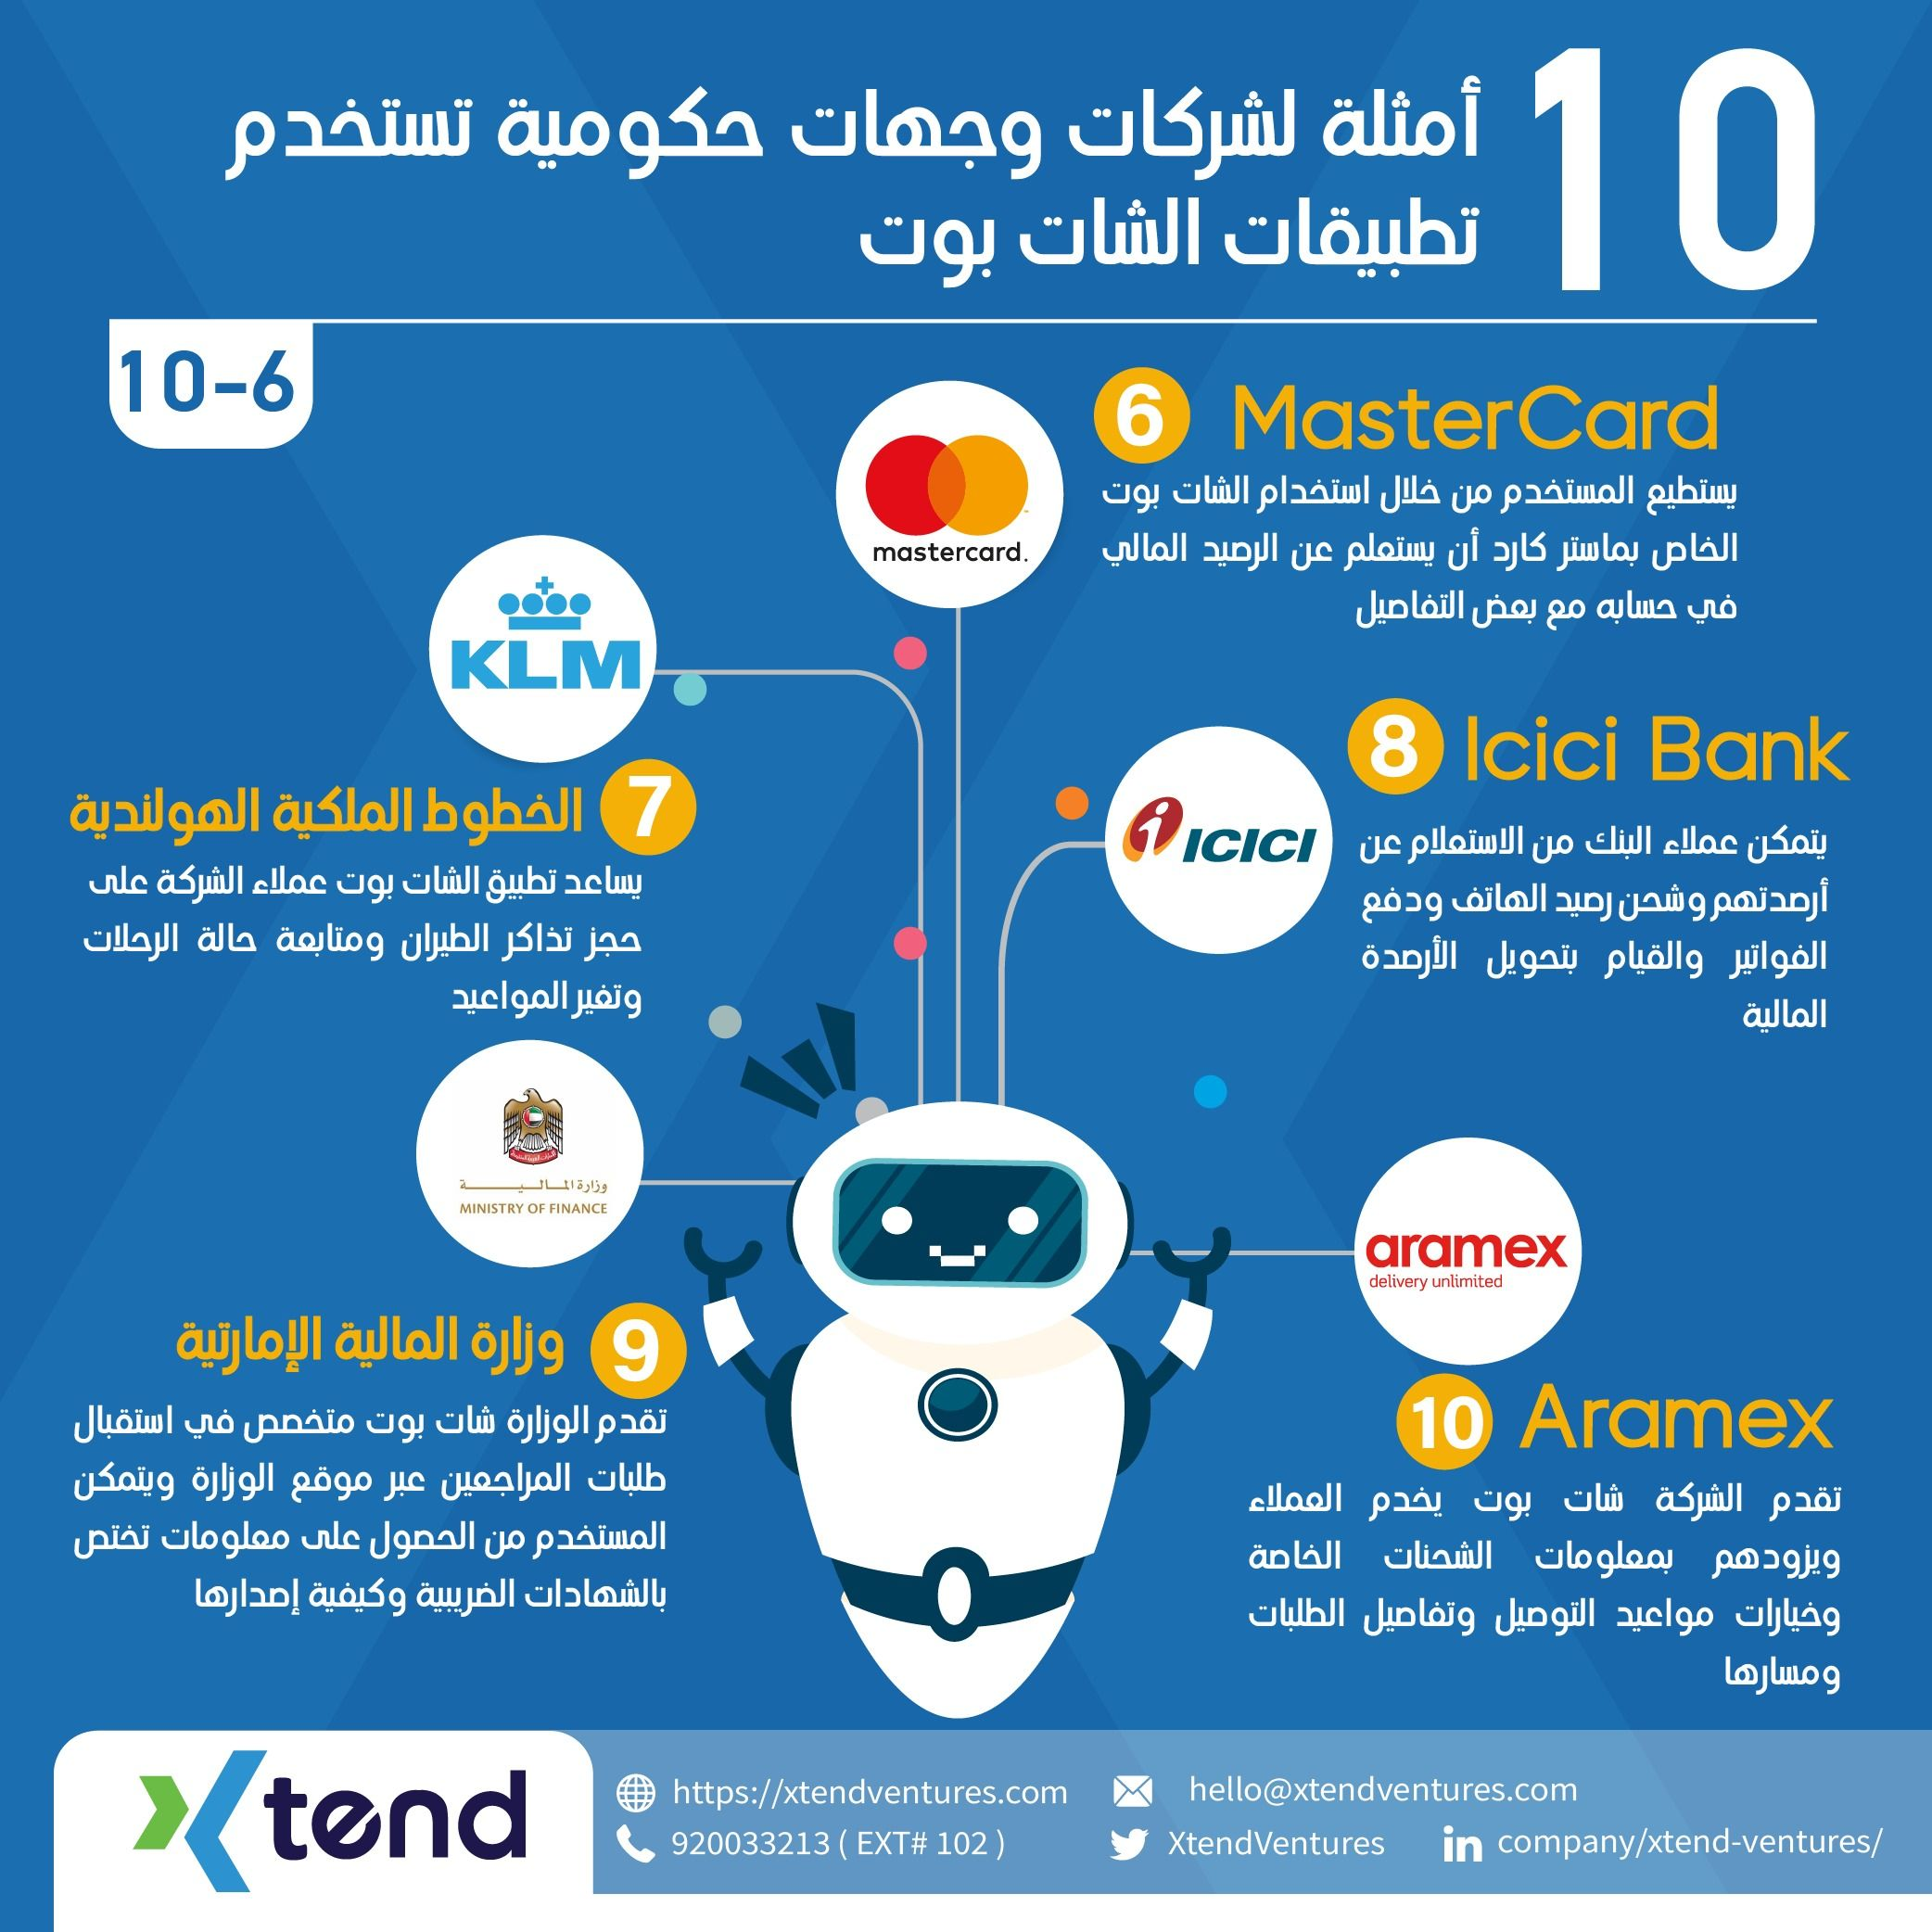 Xtend اكستند On Twitter 10 Things Mastercard Map